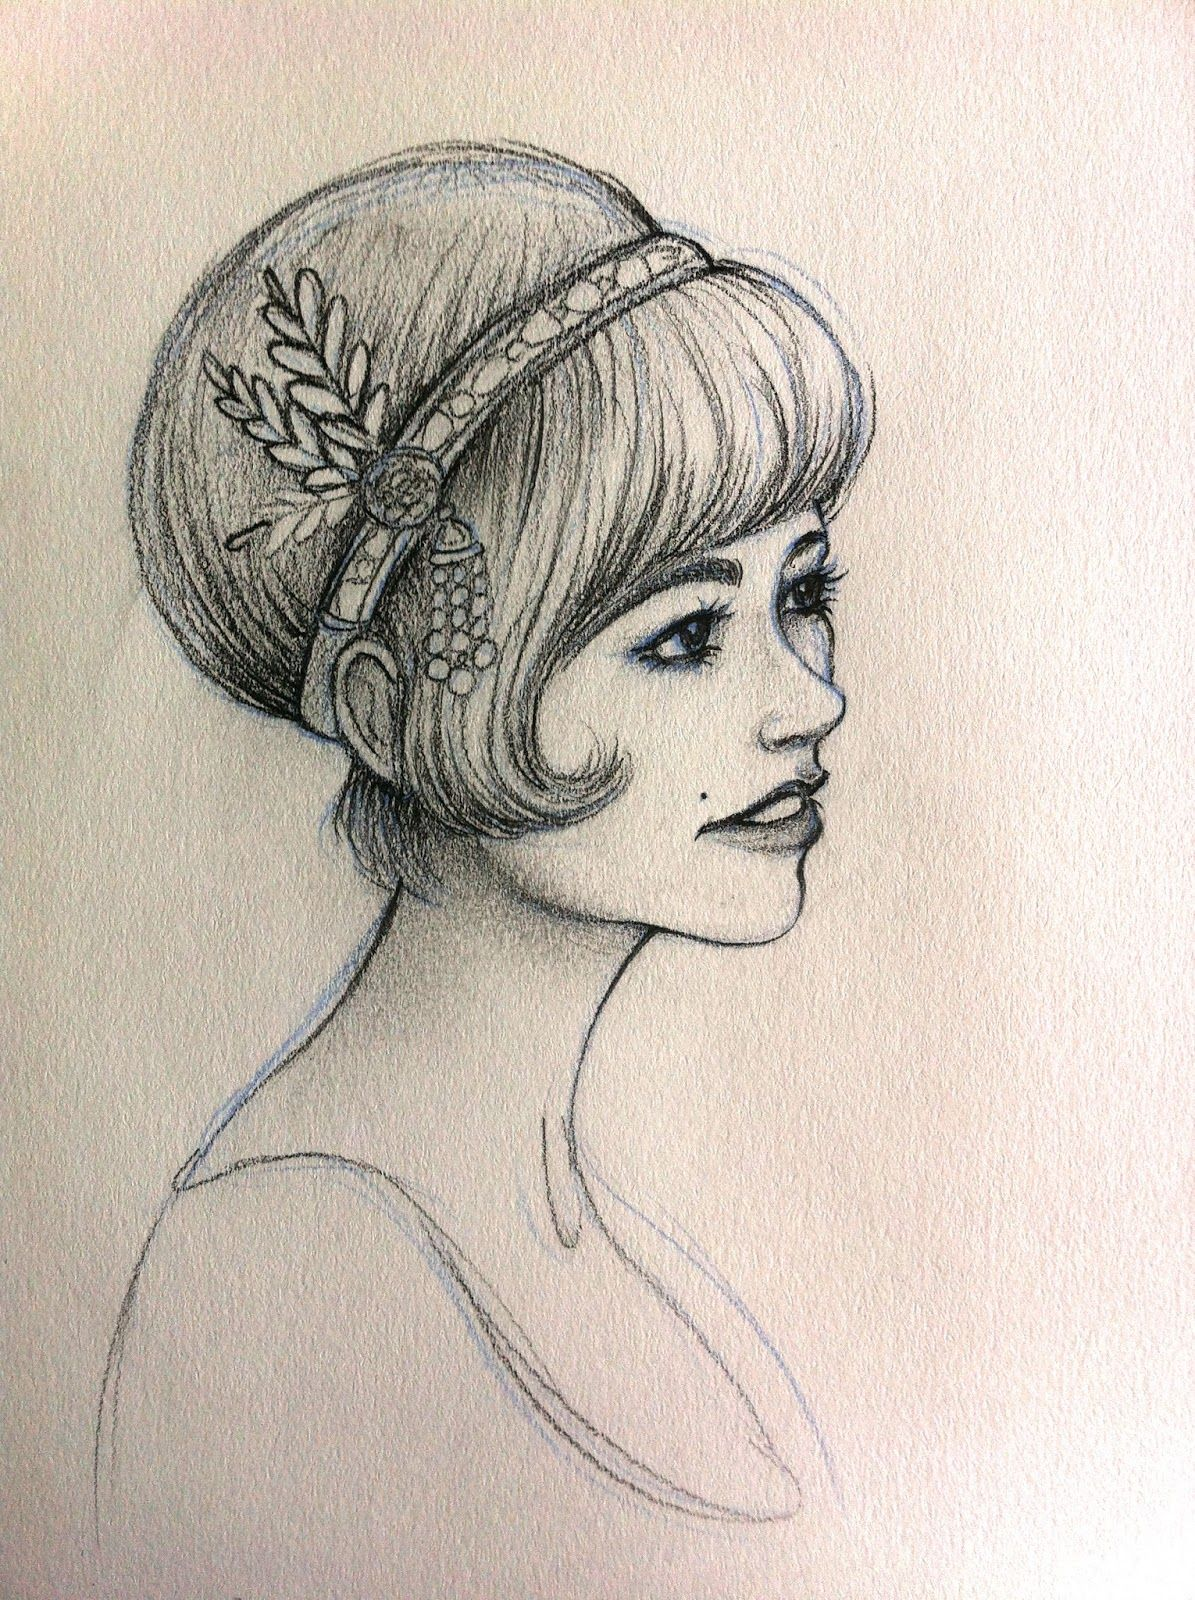 Daisyy daisy great gatsby daisy drawing drawing techniques art sketches art drawings